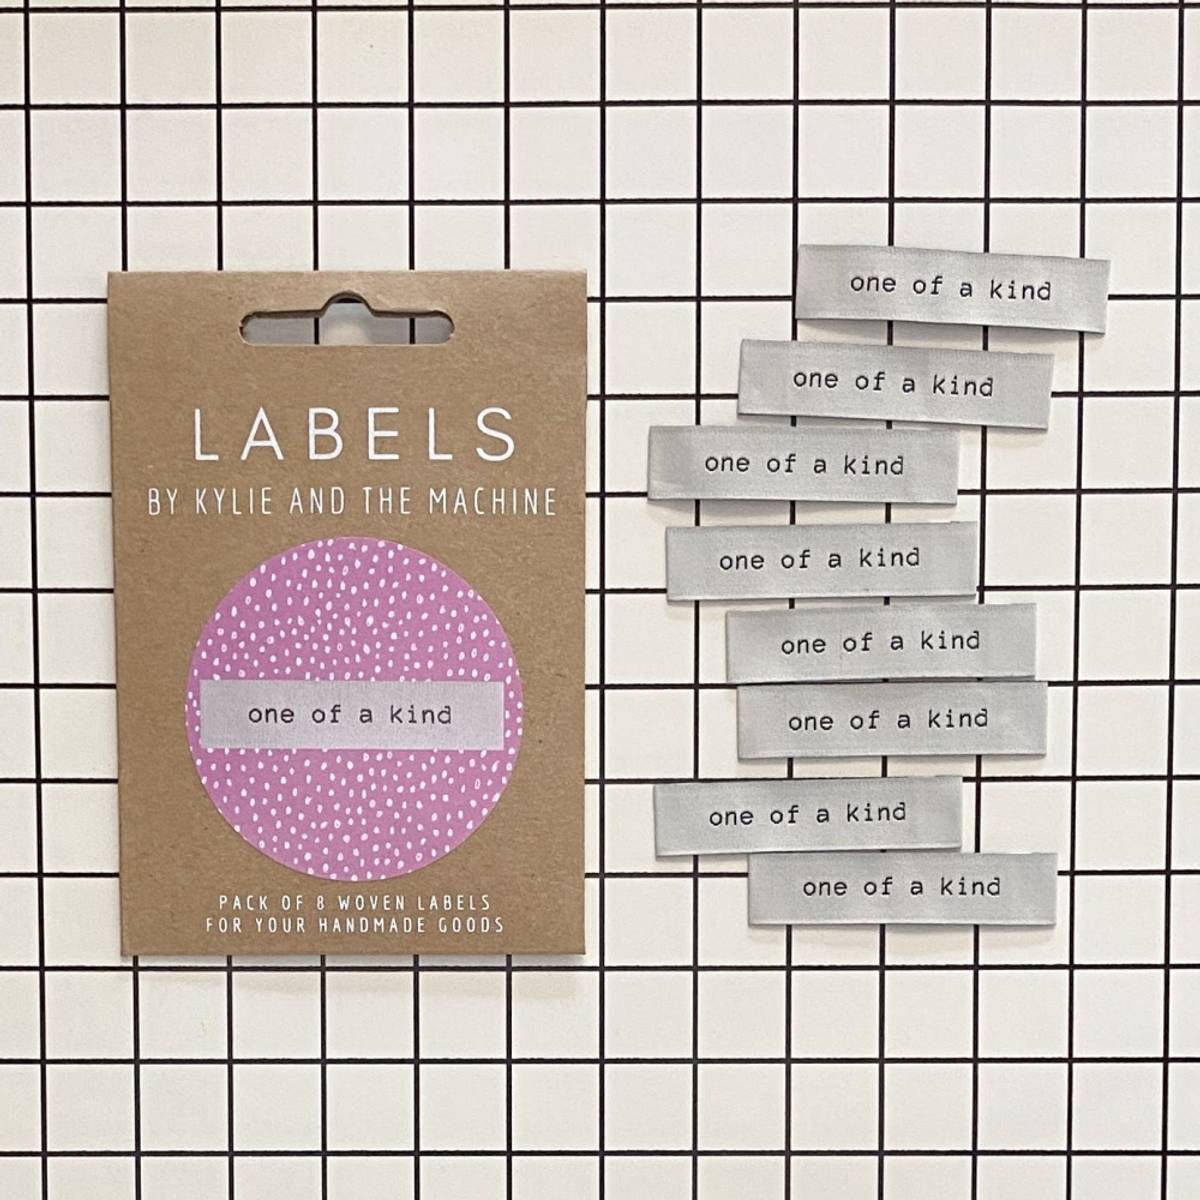 Labels - One of a kind